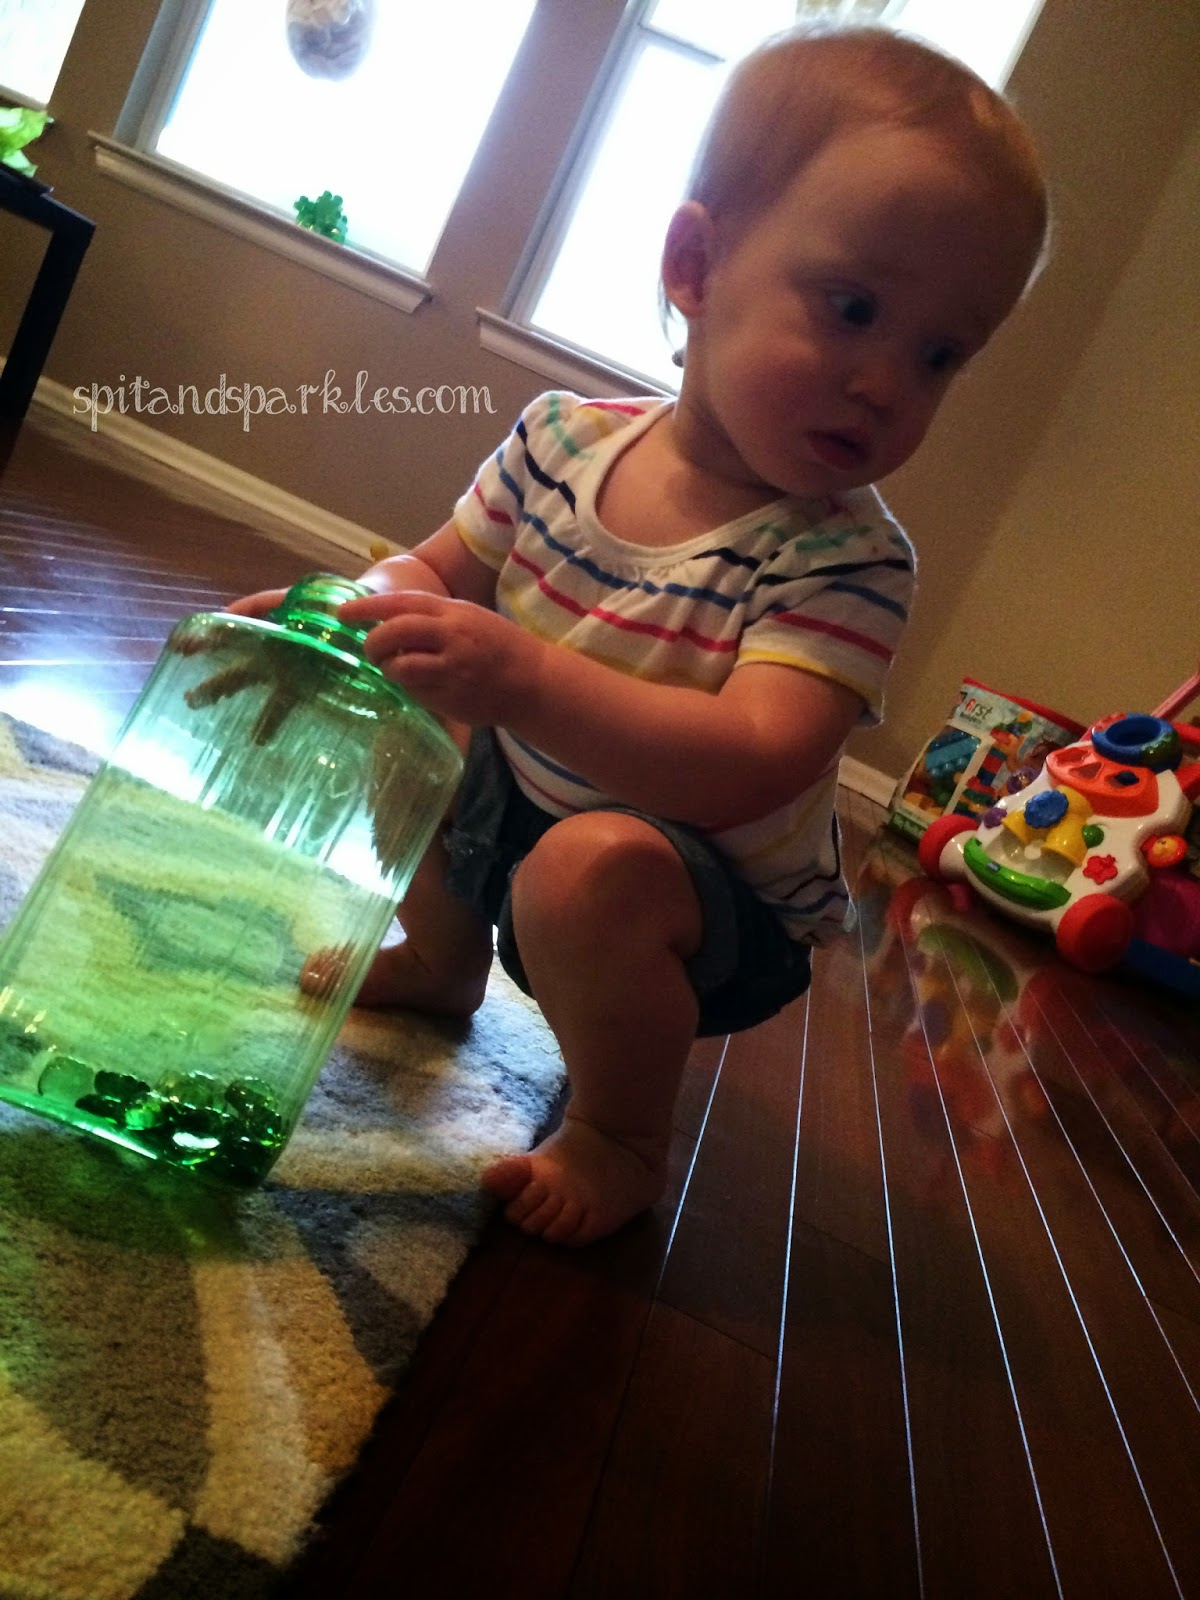 Fill a large container with glass beads and teach baby how to dump out and fill up for a fine motor skills activity. #totschool #homeschool #earlylearning #StPatricksDay